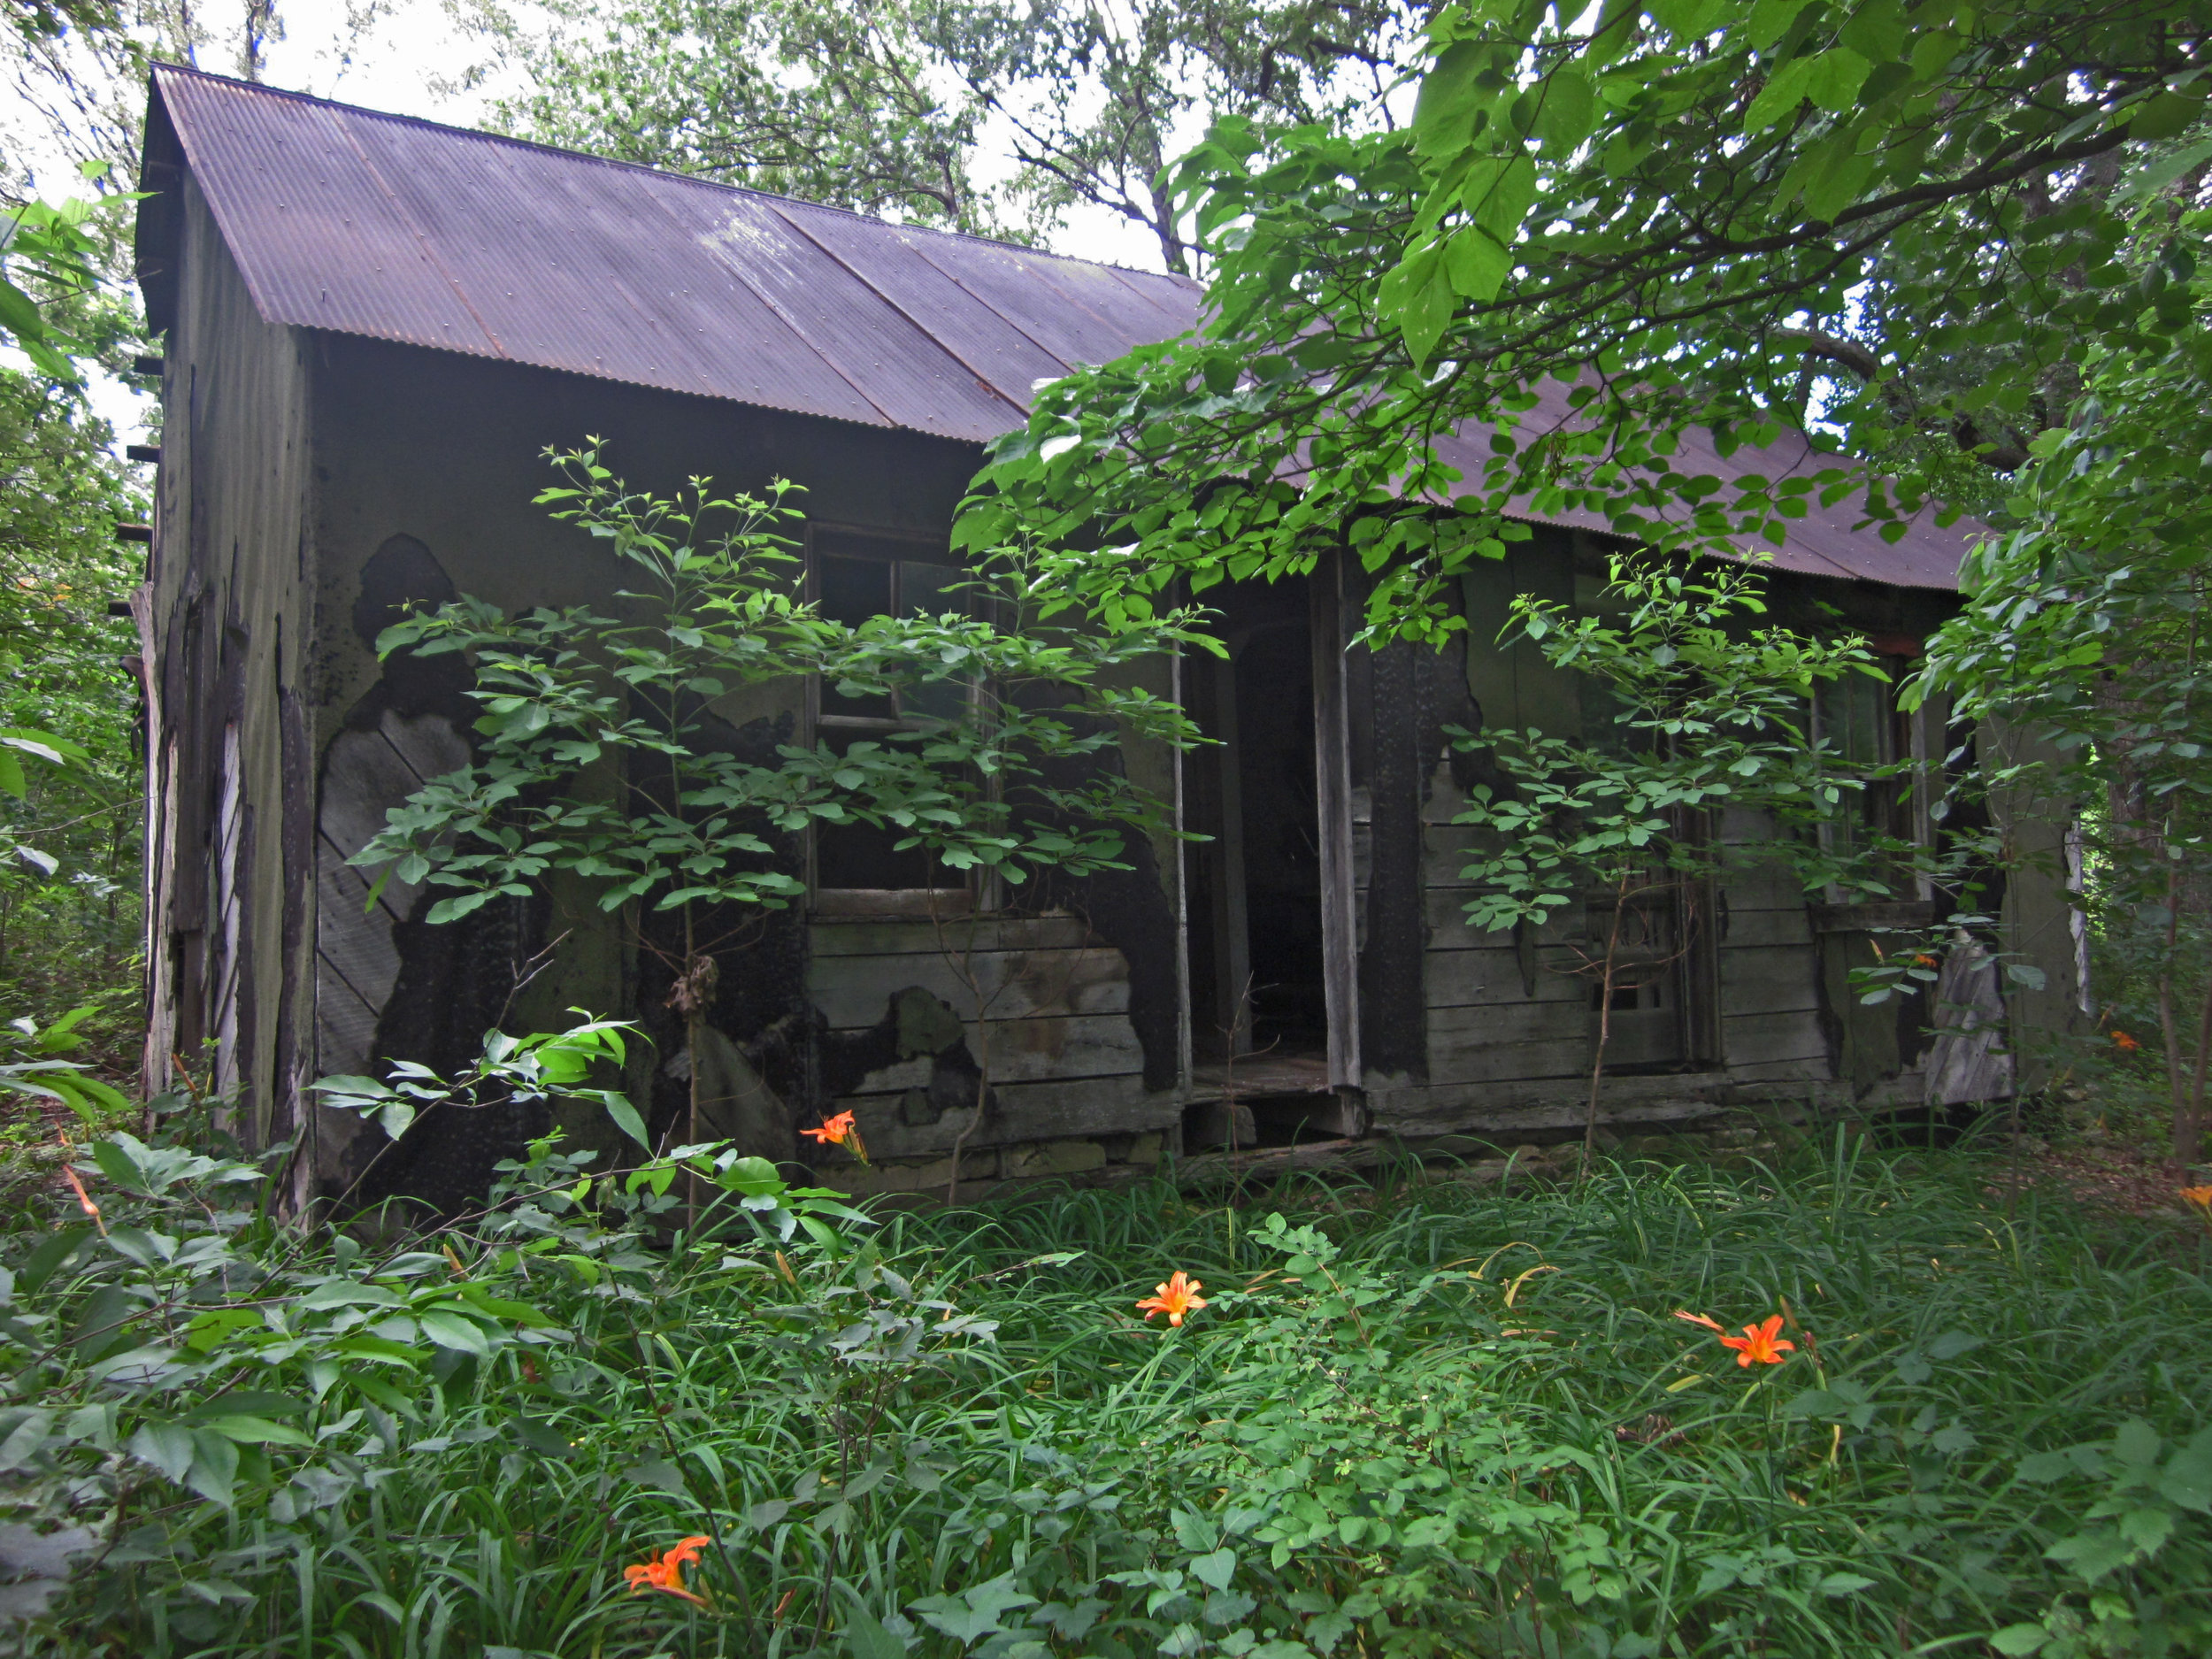 old structure in wooded area